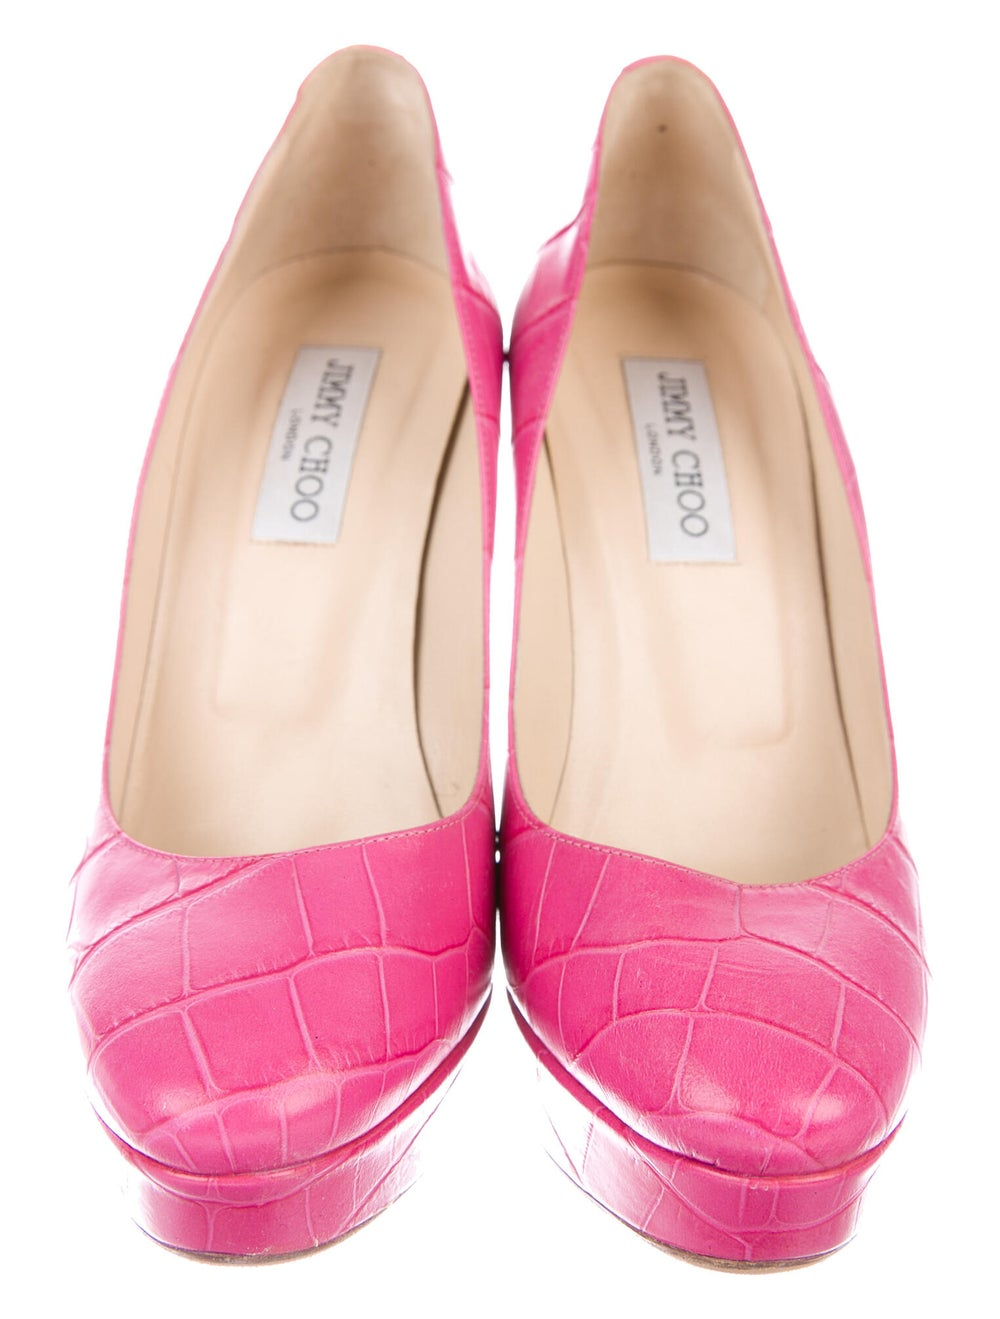 Jimmy Choo Embossed Leather Pumps Pink - image 3